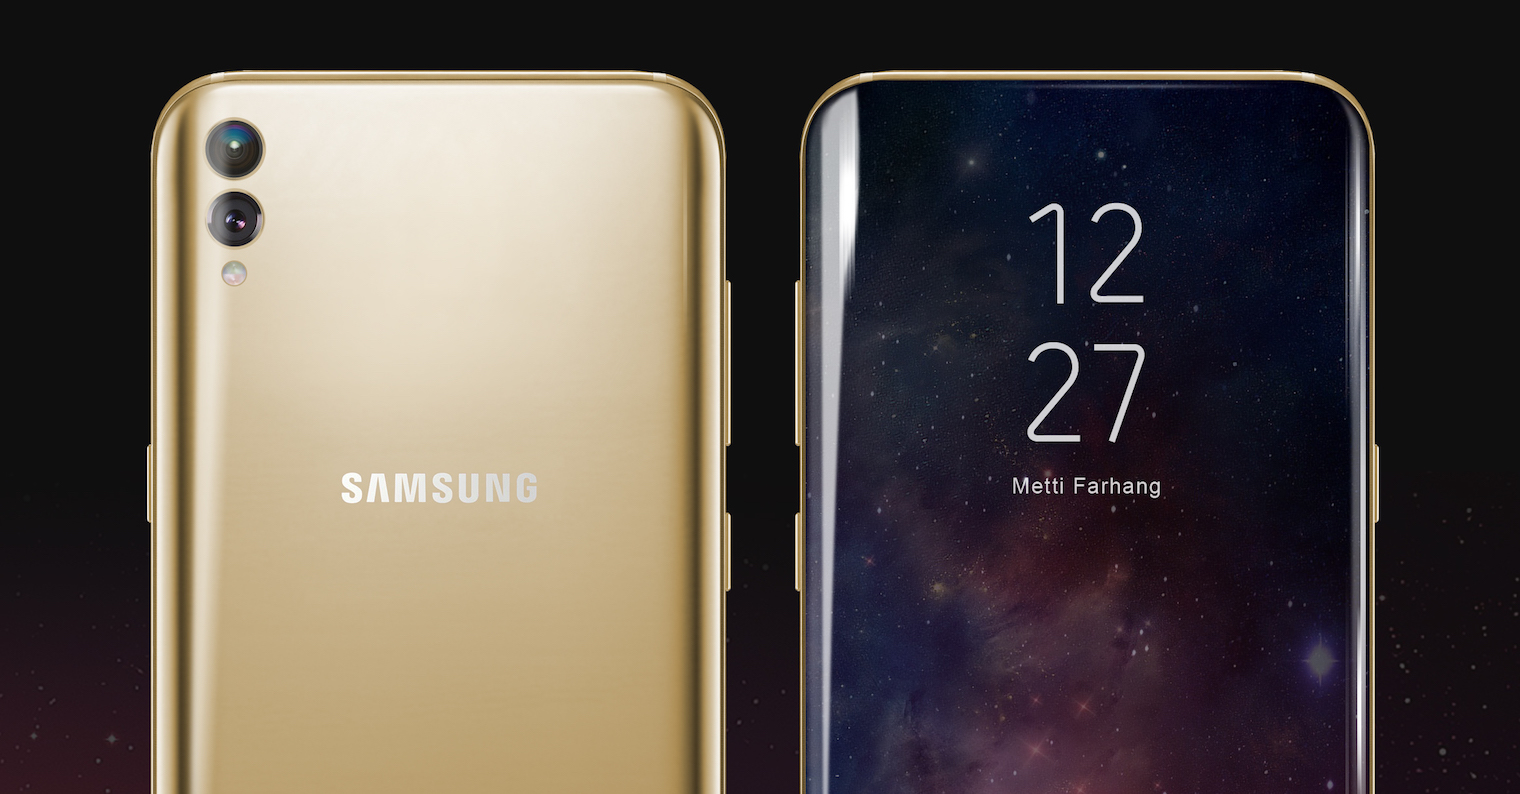 Samsung Galaxy A5 to feature an Infinity Display